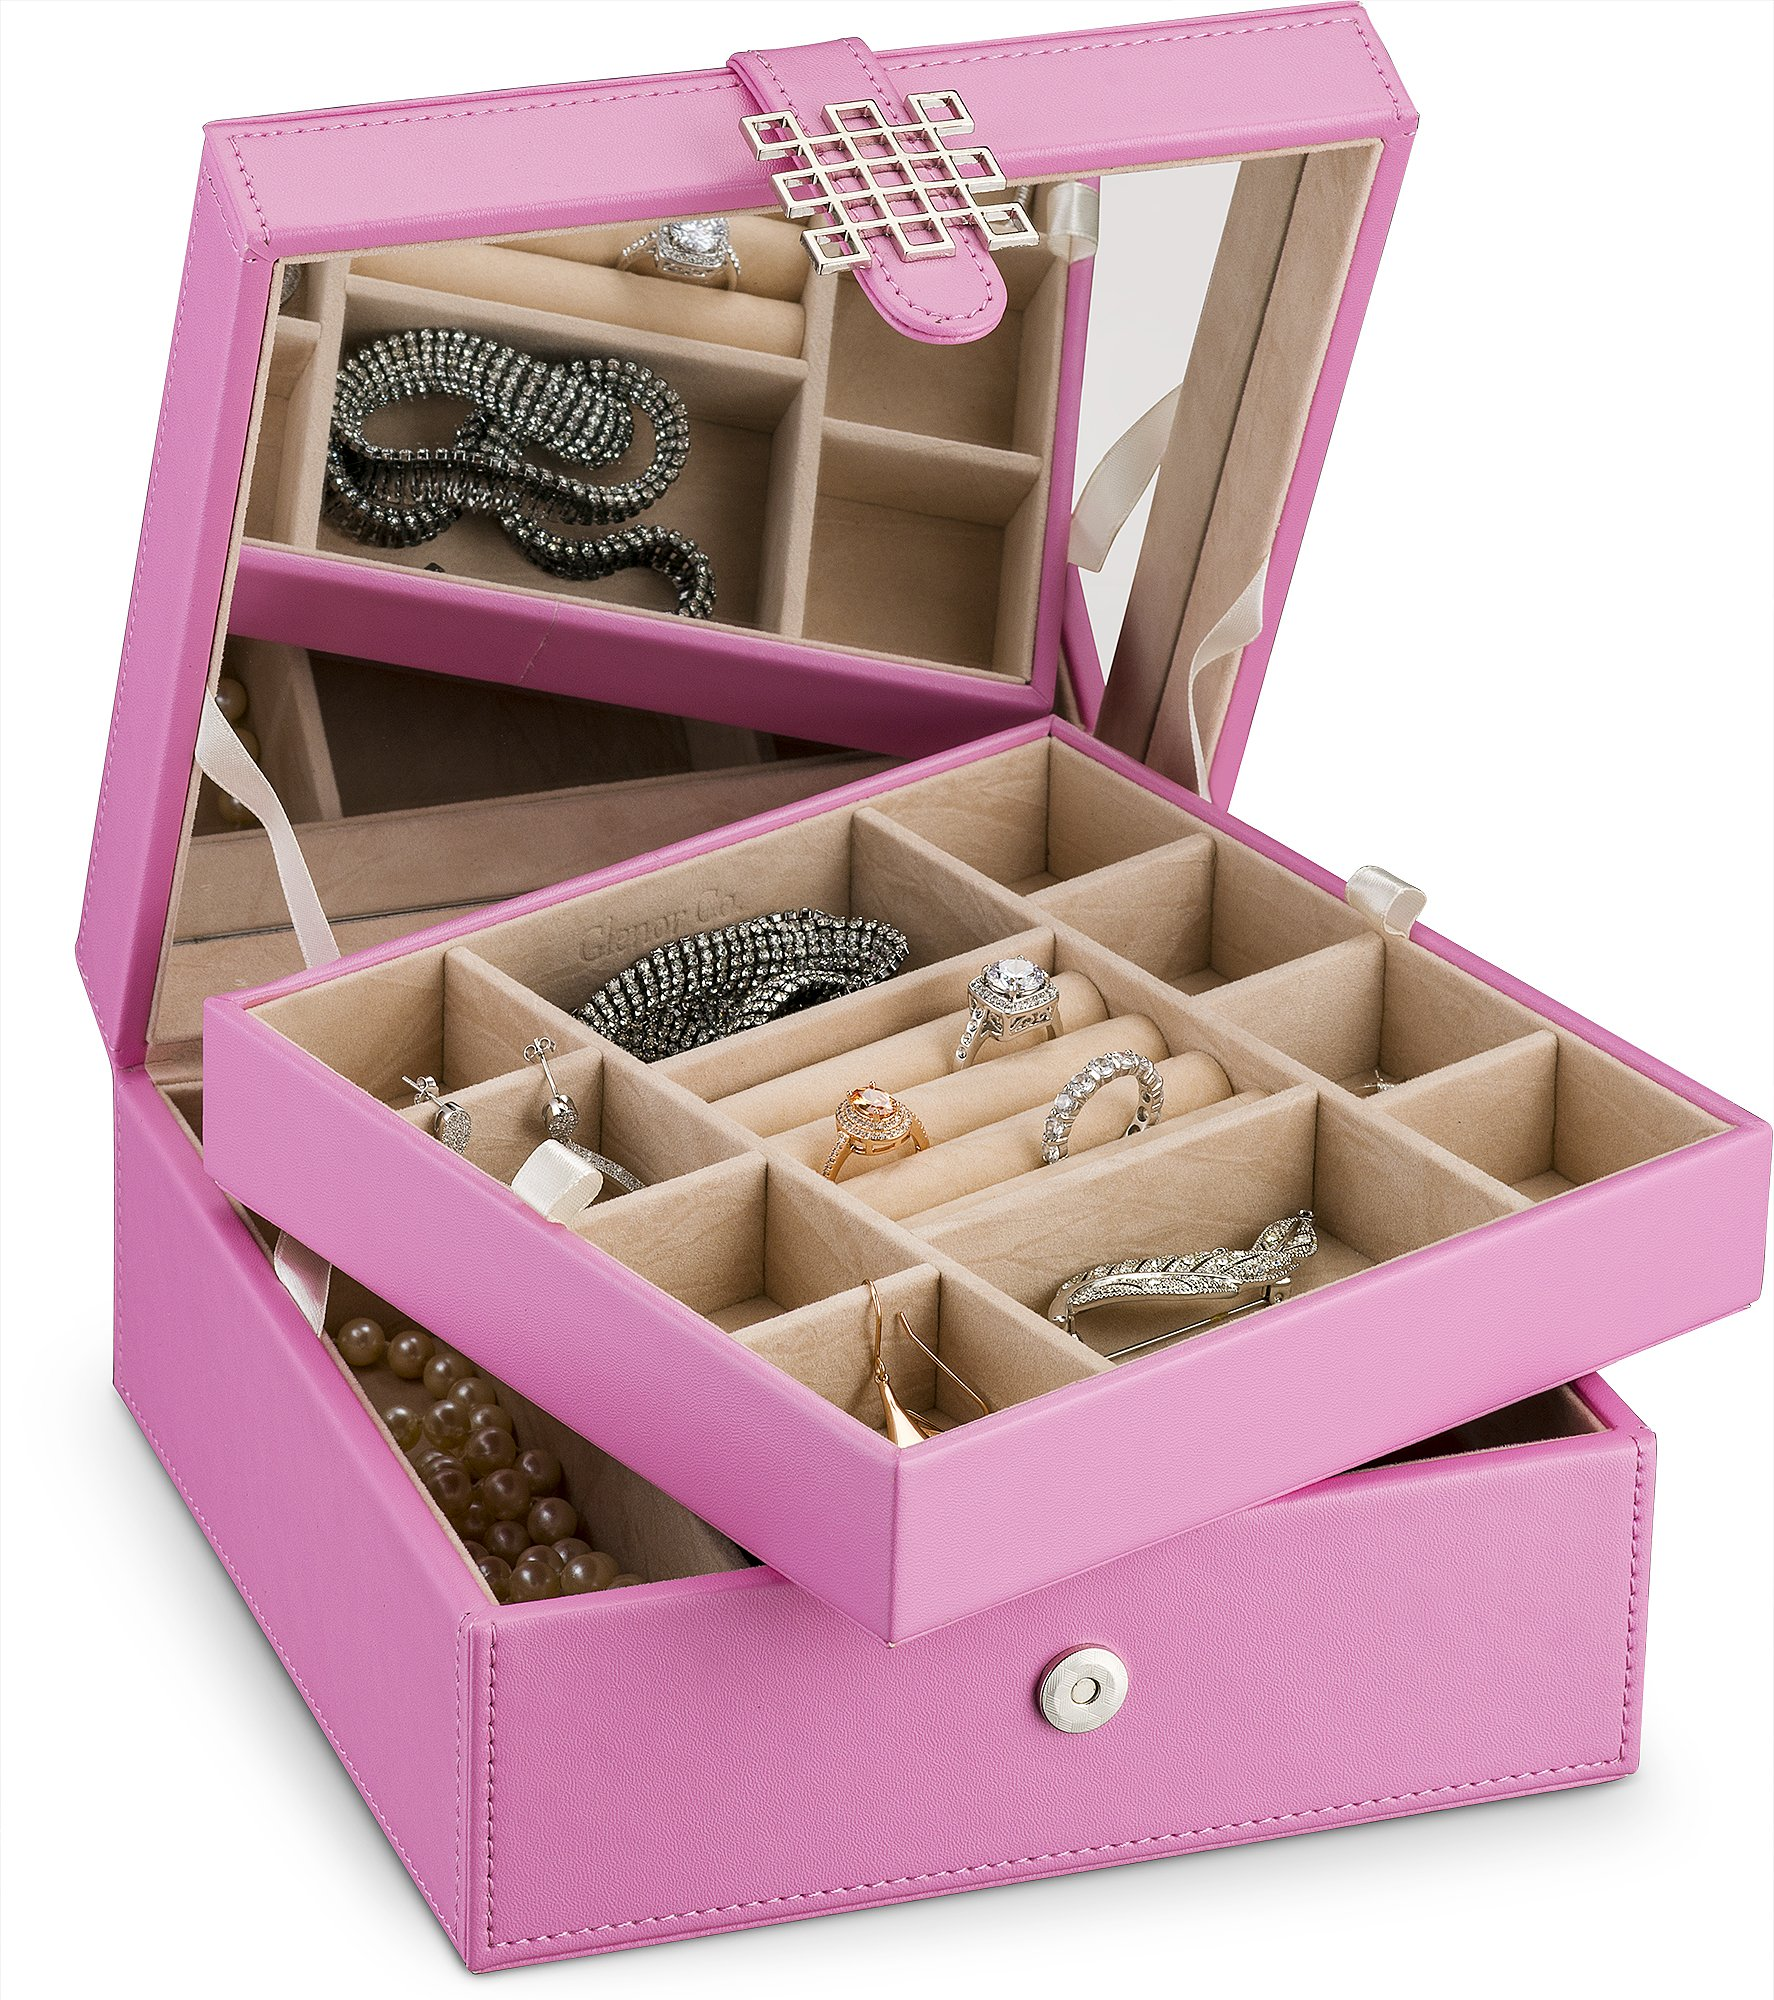 Glenor Co Jewelry Box Organizer for Girls - Small 17 Slot Classic Holder with Modern Closure, Large Mirror, 2 Trays for Women & Teens - Storage Case for Earring Ring Necklace Bracelet -PU Leather Pink